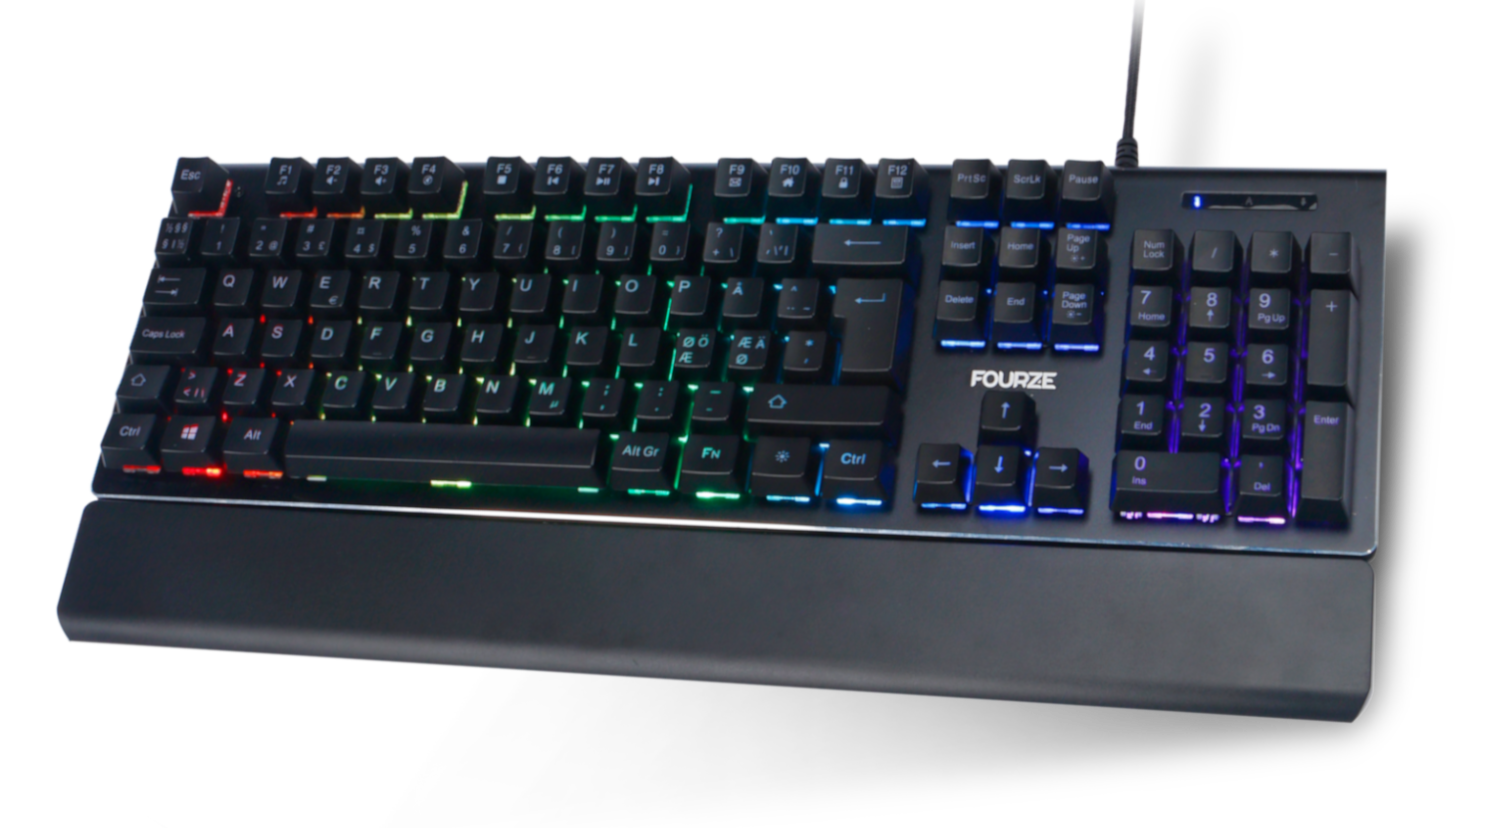 FOURZE GK110 X-switch Semi-Mechanical Gaming Keyboard slightly lifted of the ground, seen from the top.